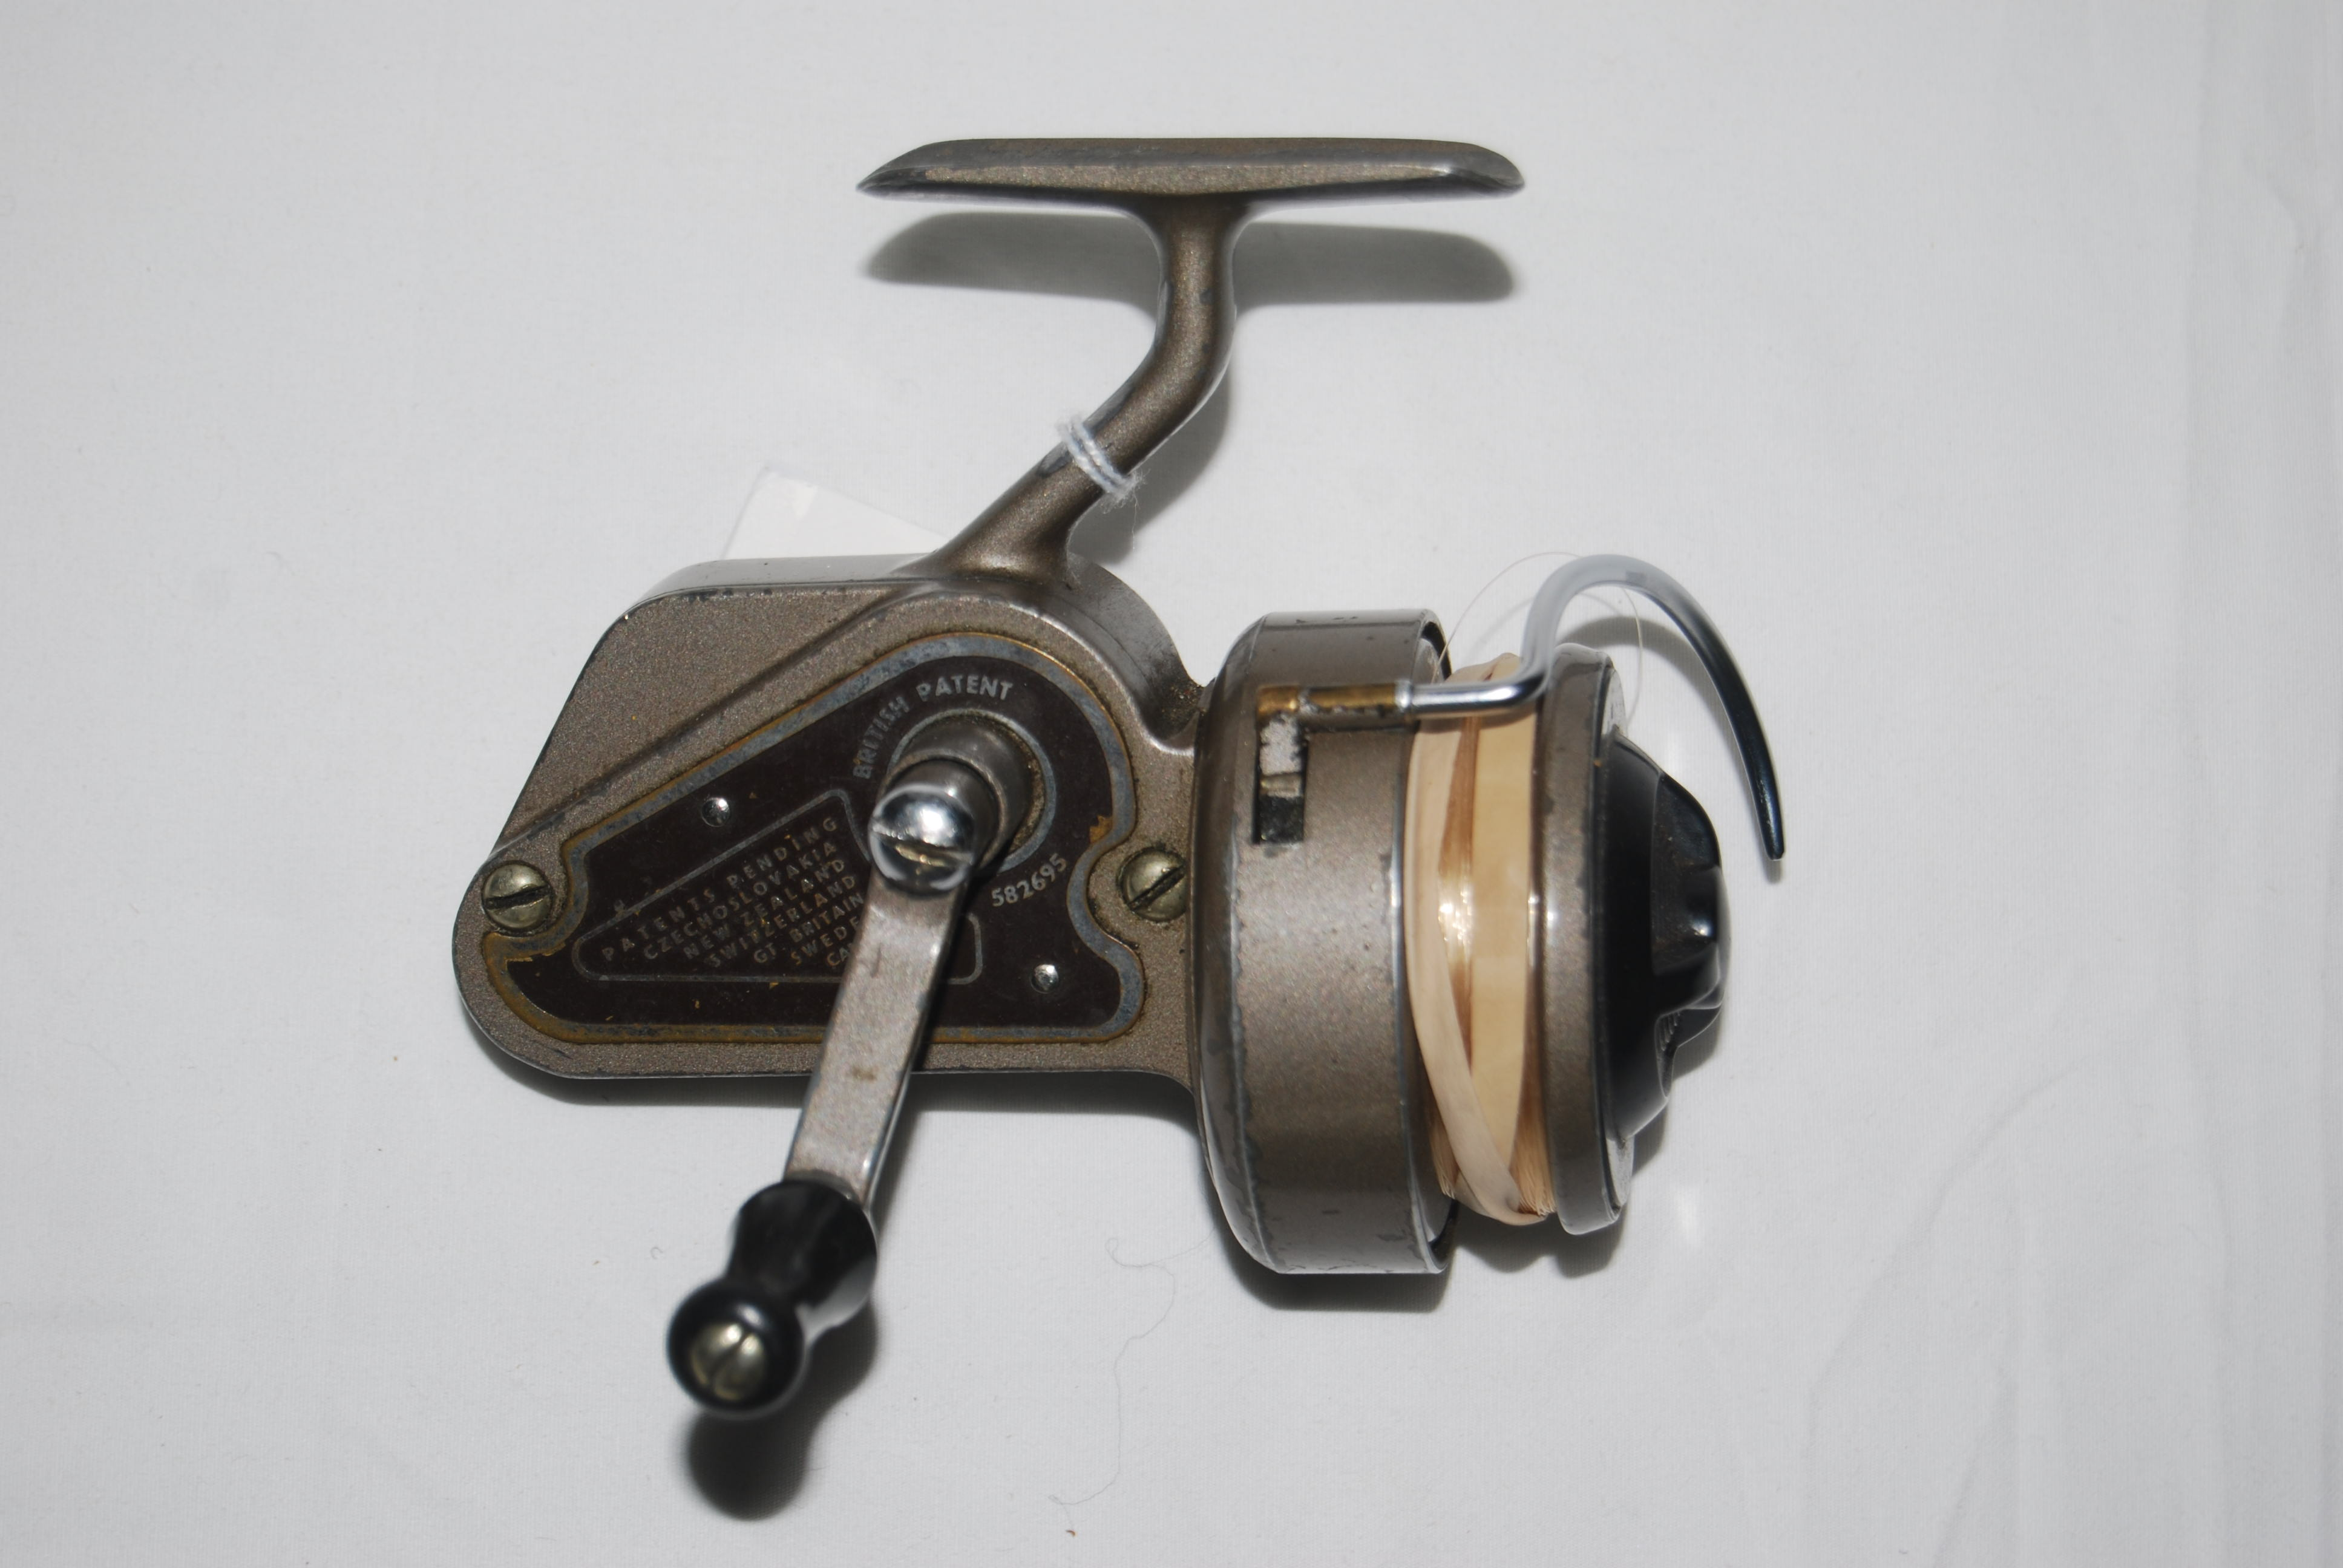 Image for J.W. YOUNG AMBIDEX No. 2 Spin Reel. LH/RH. Circa 1947. First spinning reel to have a reversible handle, for use LH or RH. Half-bail. In cloth bag.